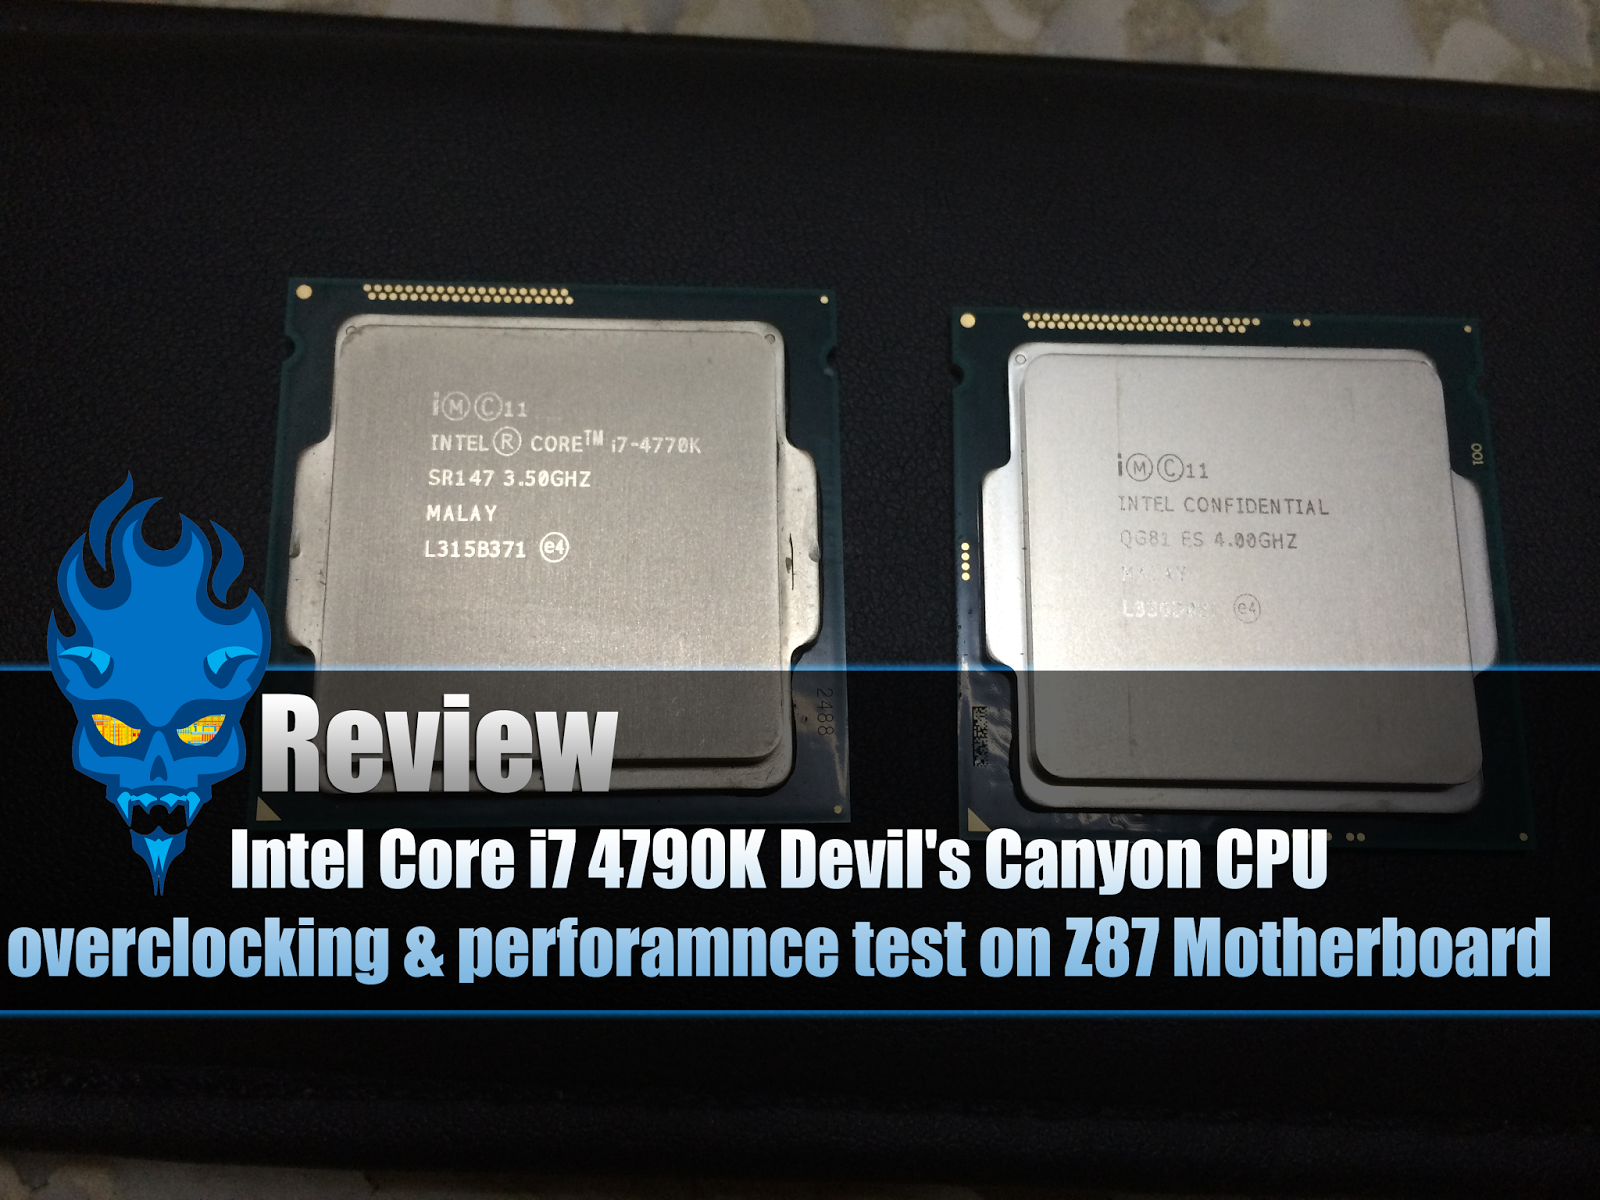 Review: Intel Core i7 4790K Devil's Canyon CPU on Z87